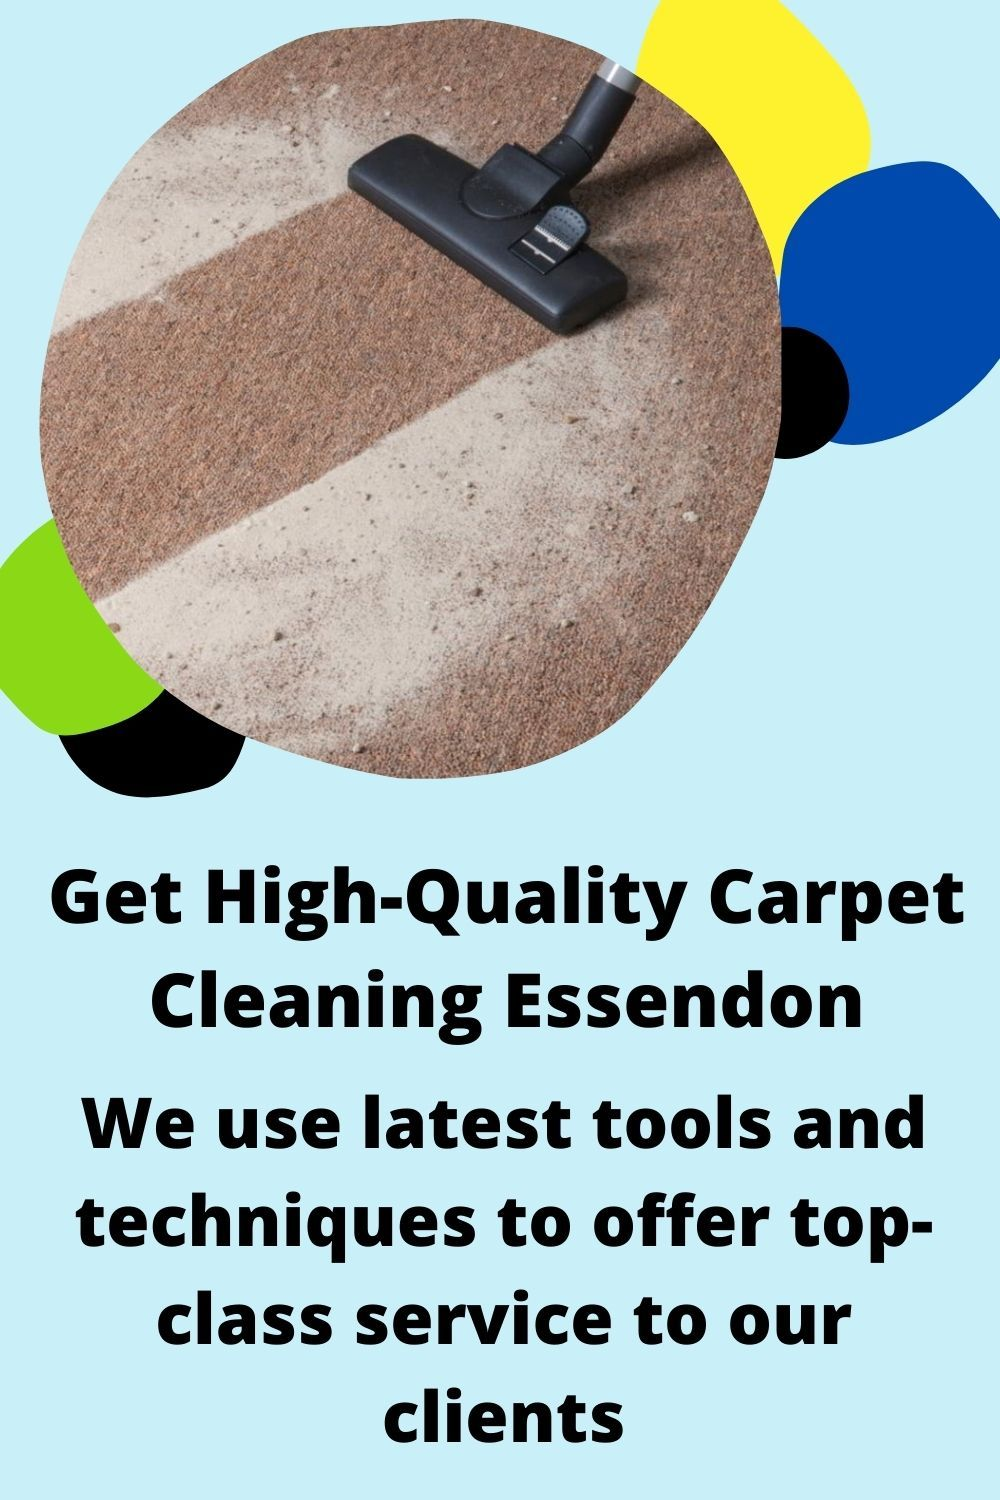 Hire the expert of making your carpet spotless. We provide the perfect services for our client's services like Carpet Steam Cleaning Service, Carpet Dry Cleaning Service and End of Lease Cleaning Carpet Services, reasonable cost. We also offer same-day booking services. #carpetcleaning #residentialcleaning #carpetcleaningservice #carpetcleaner #Essendon